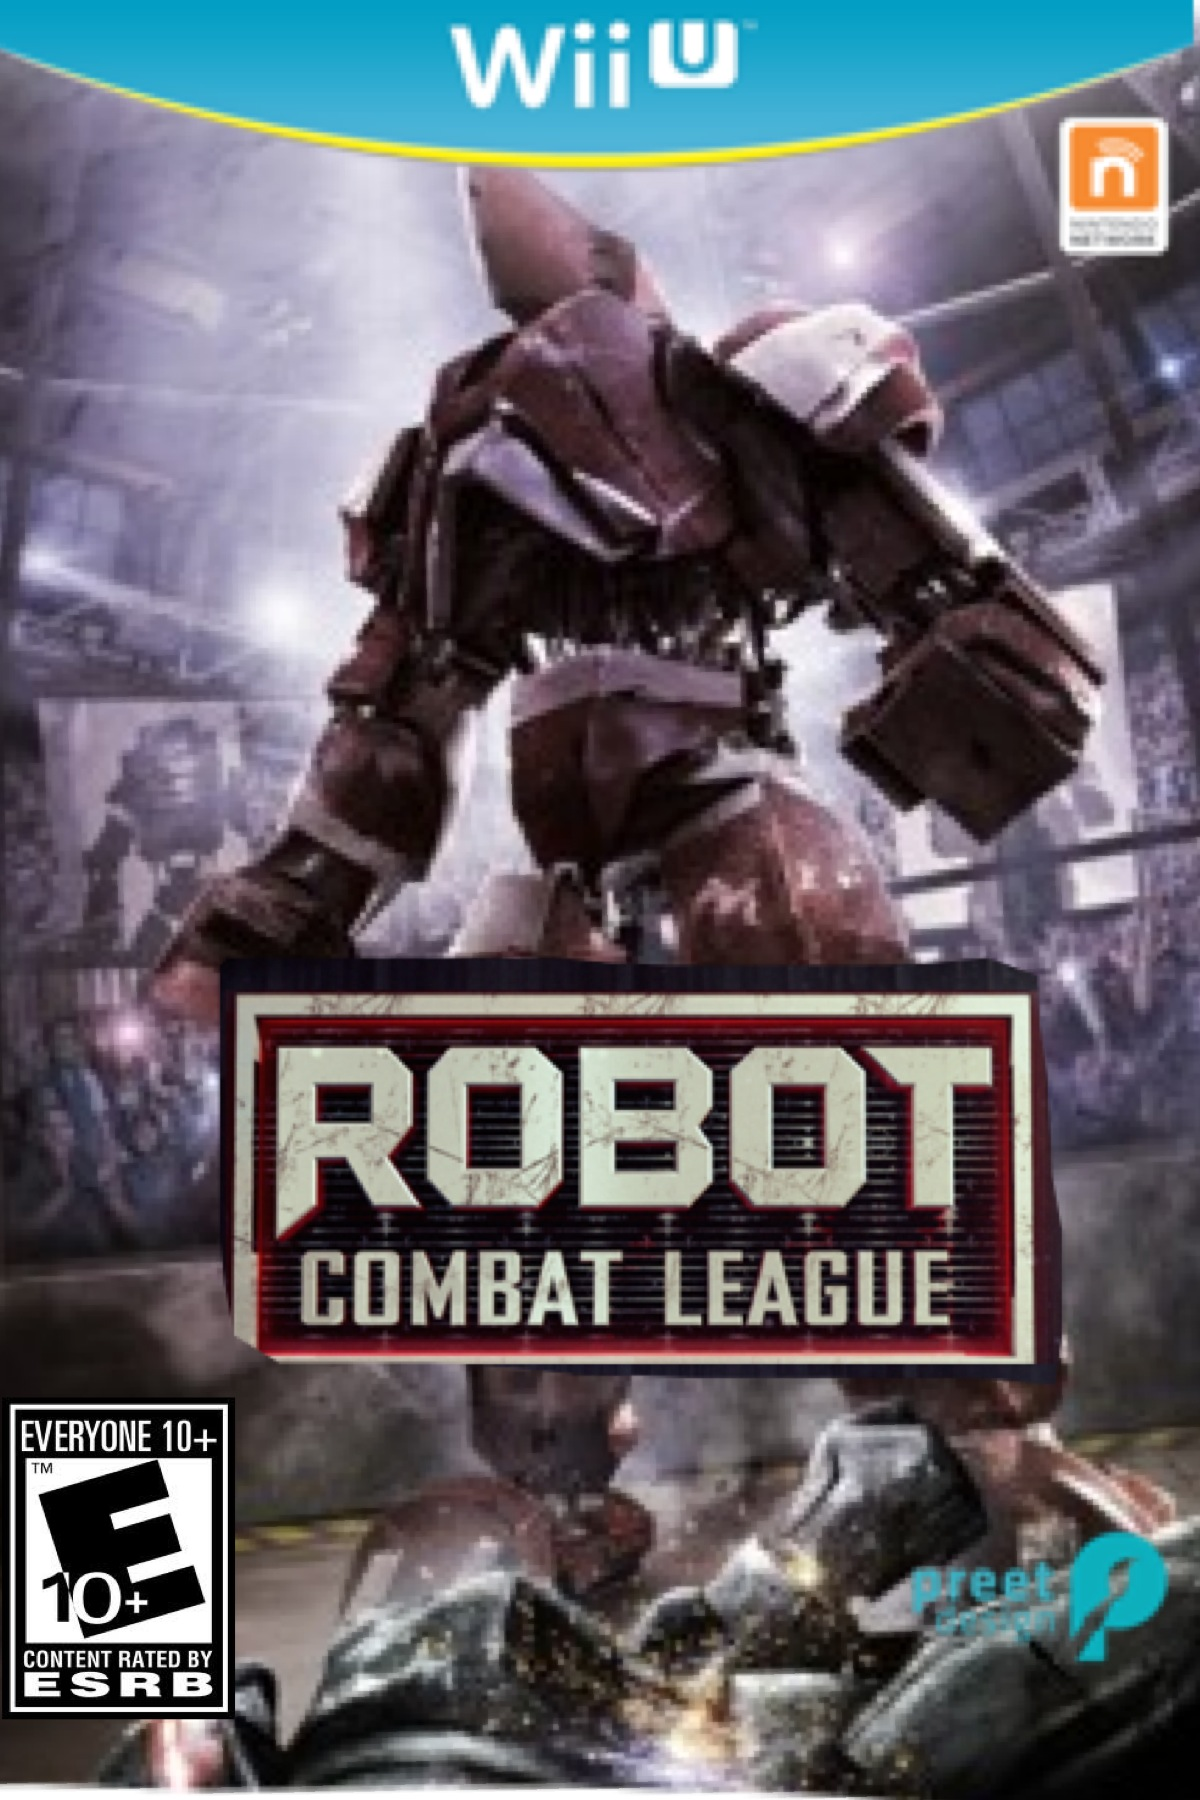 Robot Combat League: The Video Game